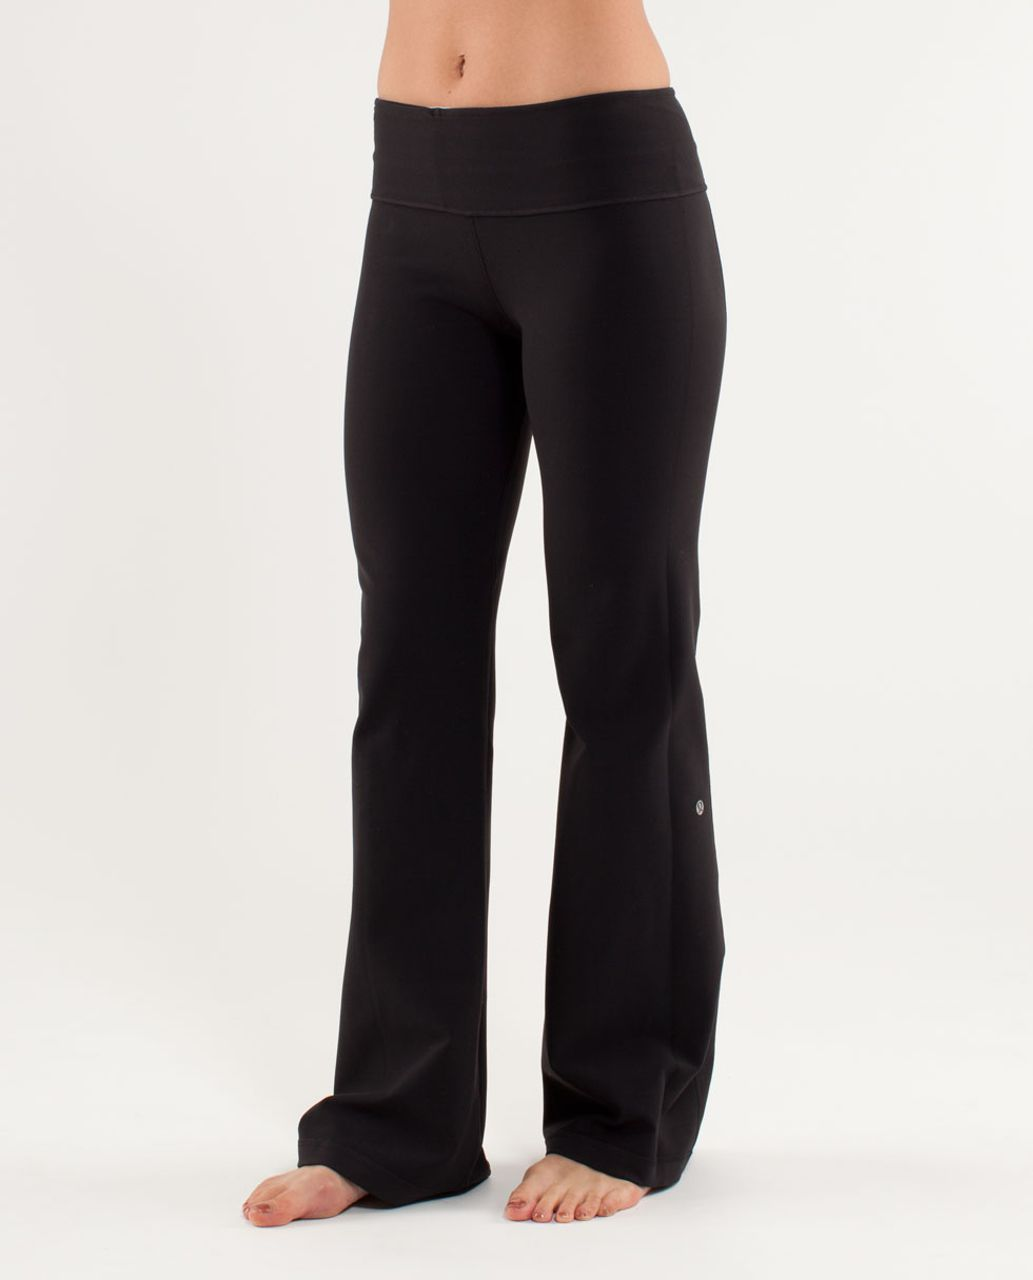 Lululemon Groove Pant (Tall) - Black / Blurred Blossoms Multi Colour / Heathered Fossil